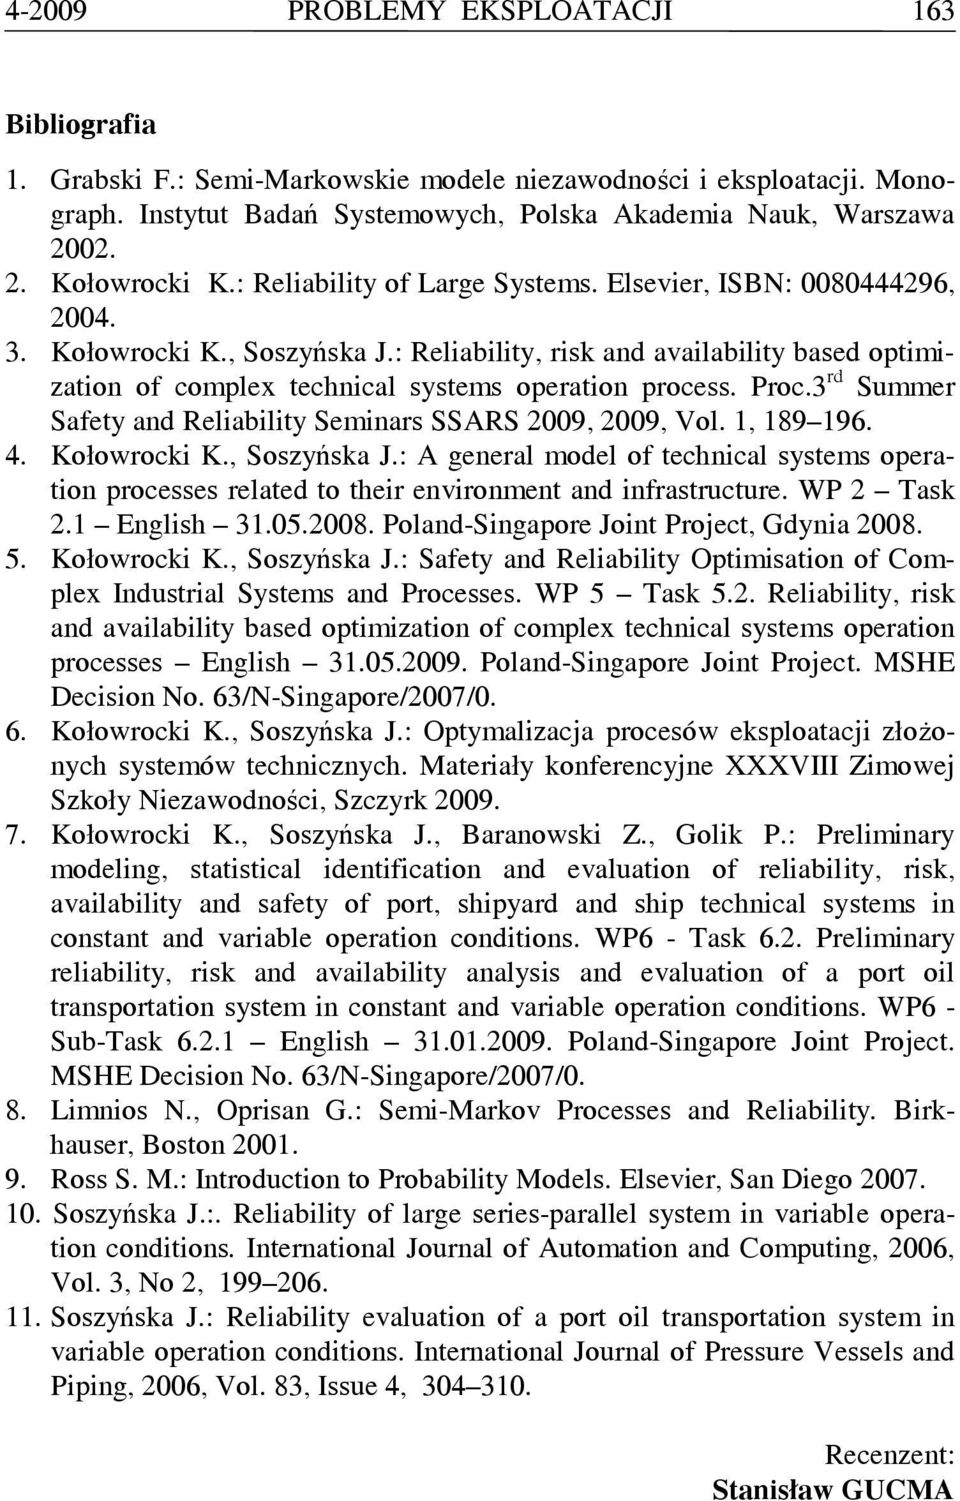 rd Summer Safety and Reliability Seminars SSARS 29, 29, Vol. 1, 189 196. 4. Kołowrocki K., Soszyńska J.